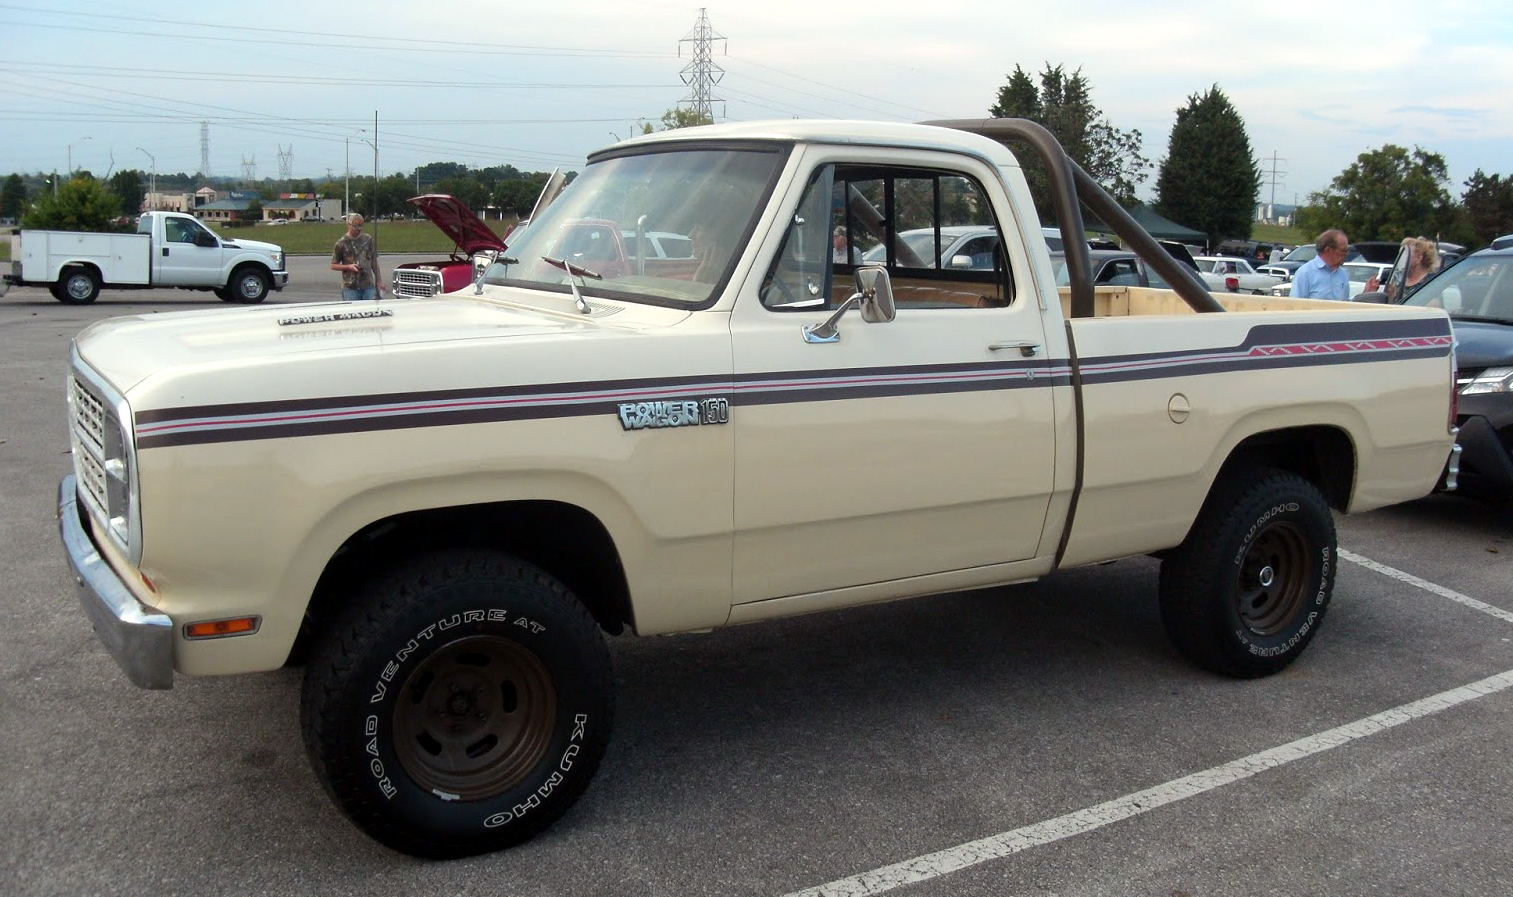 1976 Chevy Spirit Of 76 Truck Just A Car Guy I Learned Dodge Trucks Ive Never Heard The Below Is 1979 Palomino Palominos Were Built From Feb 1st Thru End Production Year